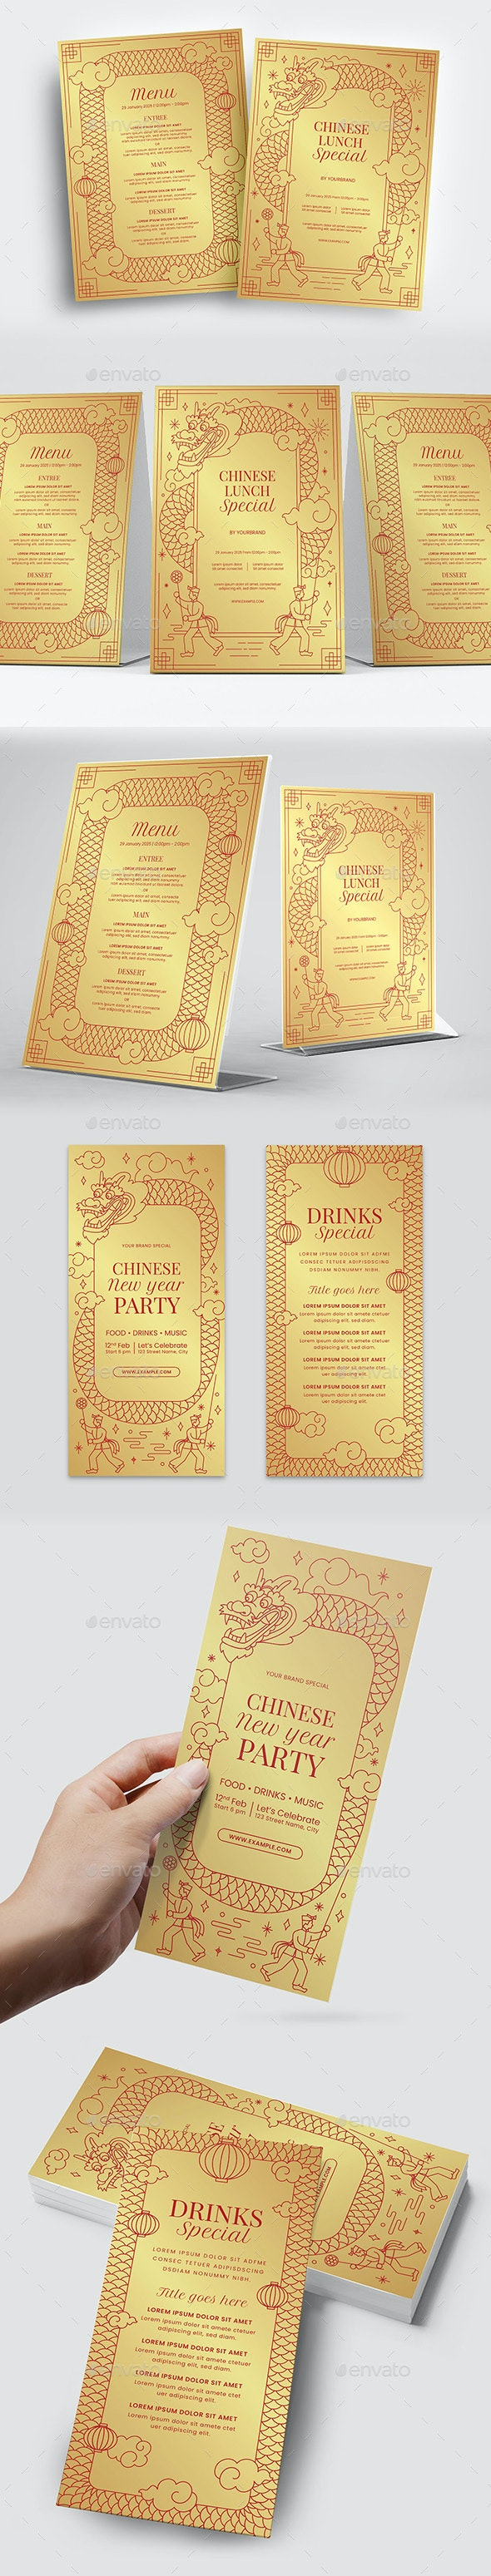 Gold Chinese Flyer - Miscellaneous Events